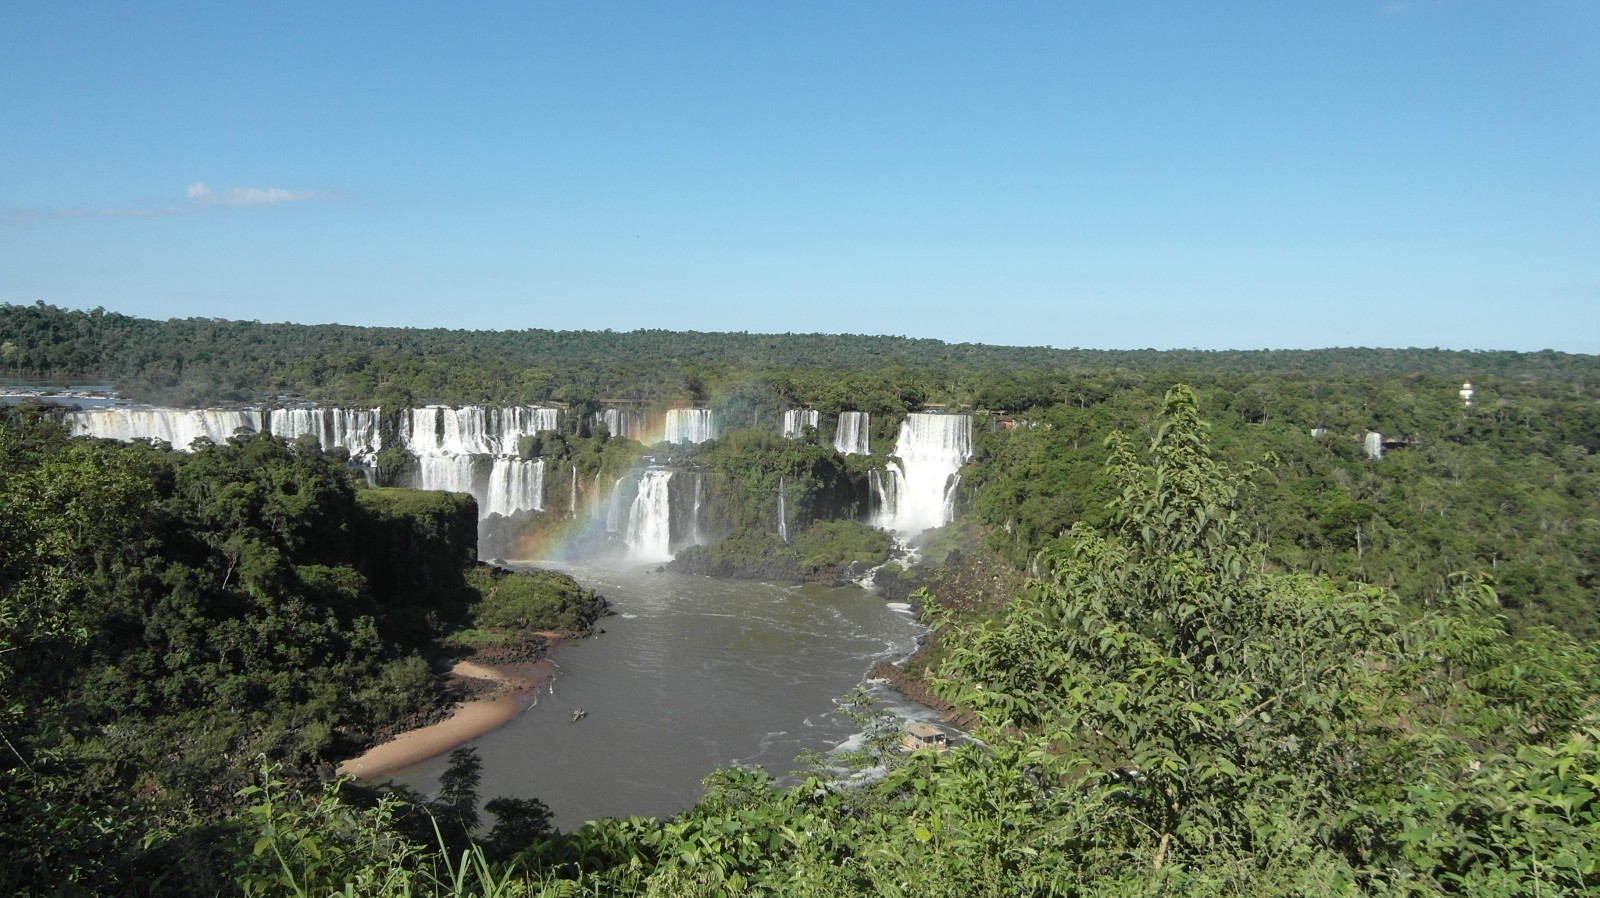 foz-do-iguacu-iguacu-waterfall-water-cases-spray-2